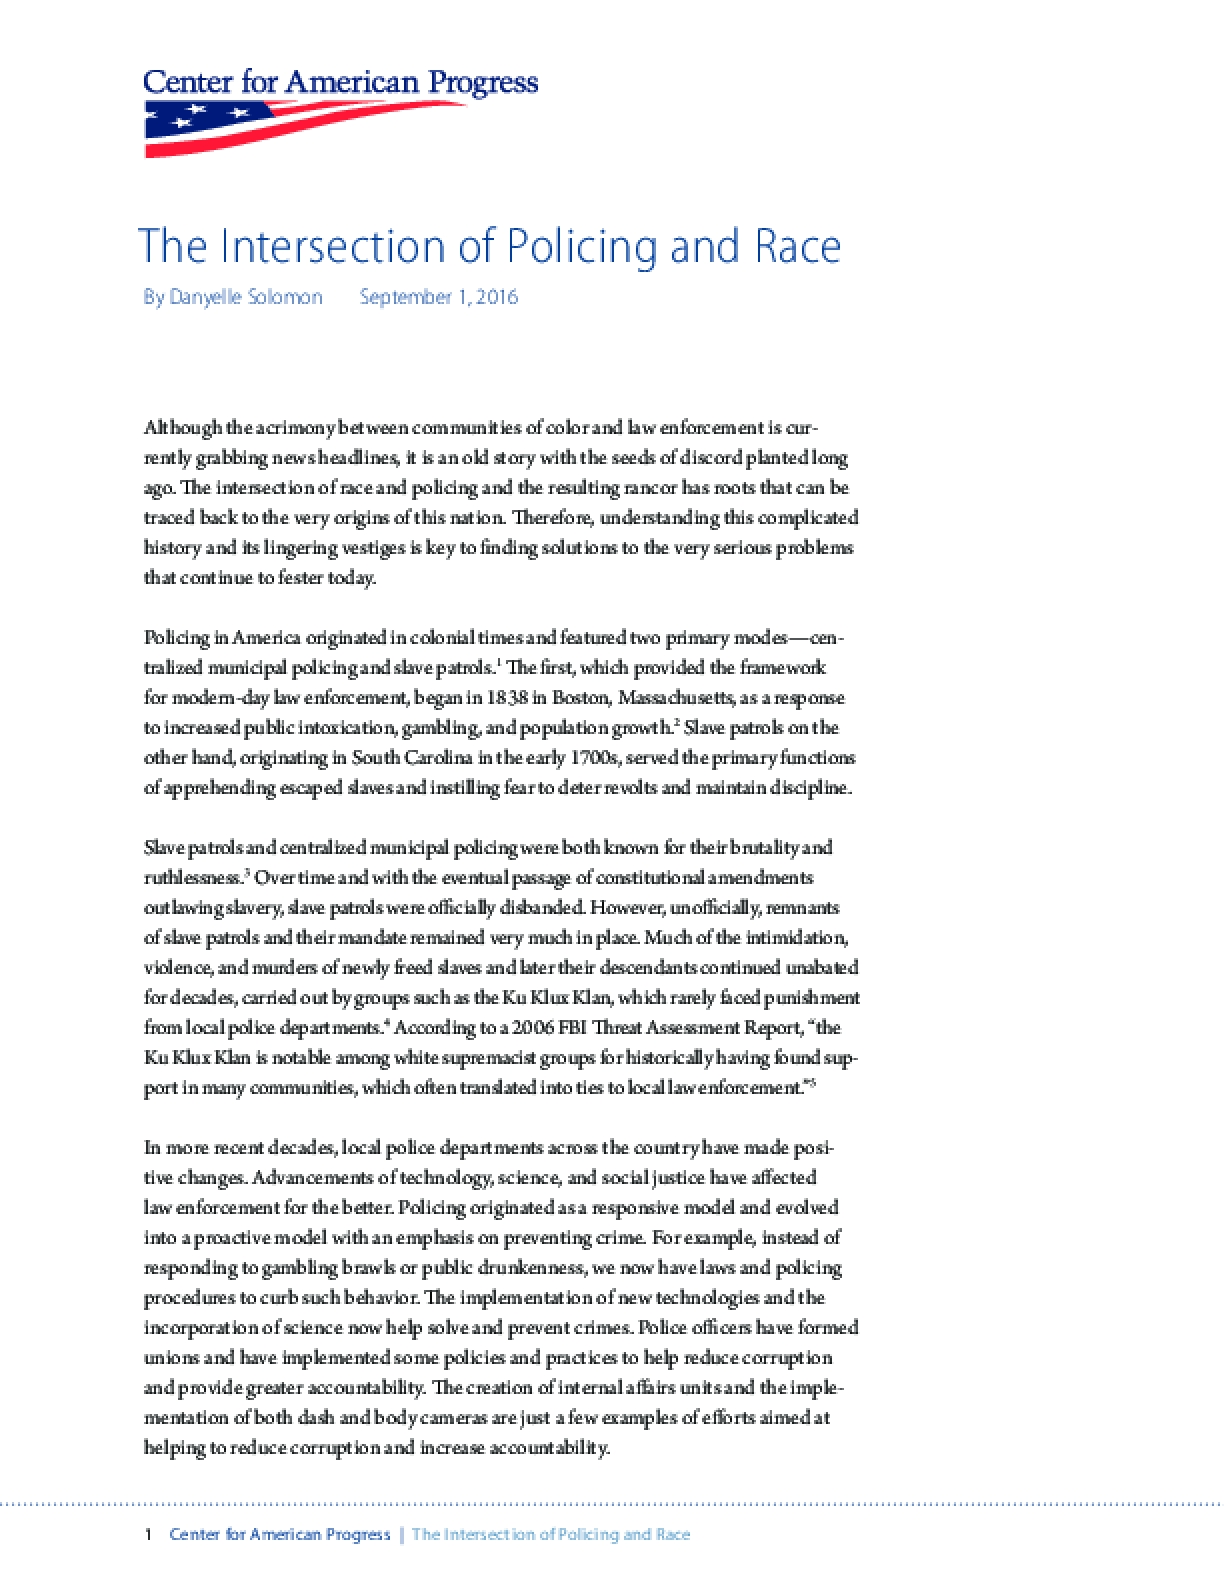 The Intersection of Policing and Race